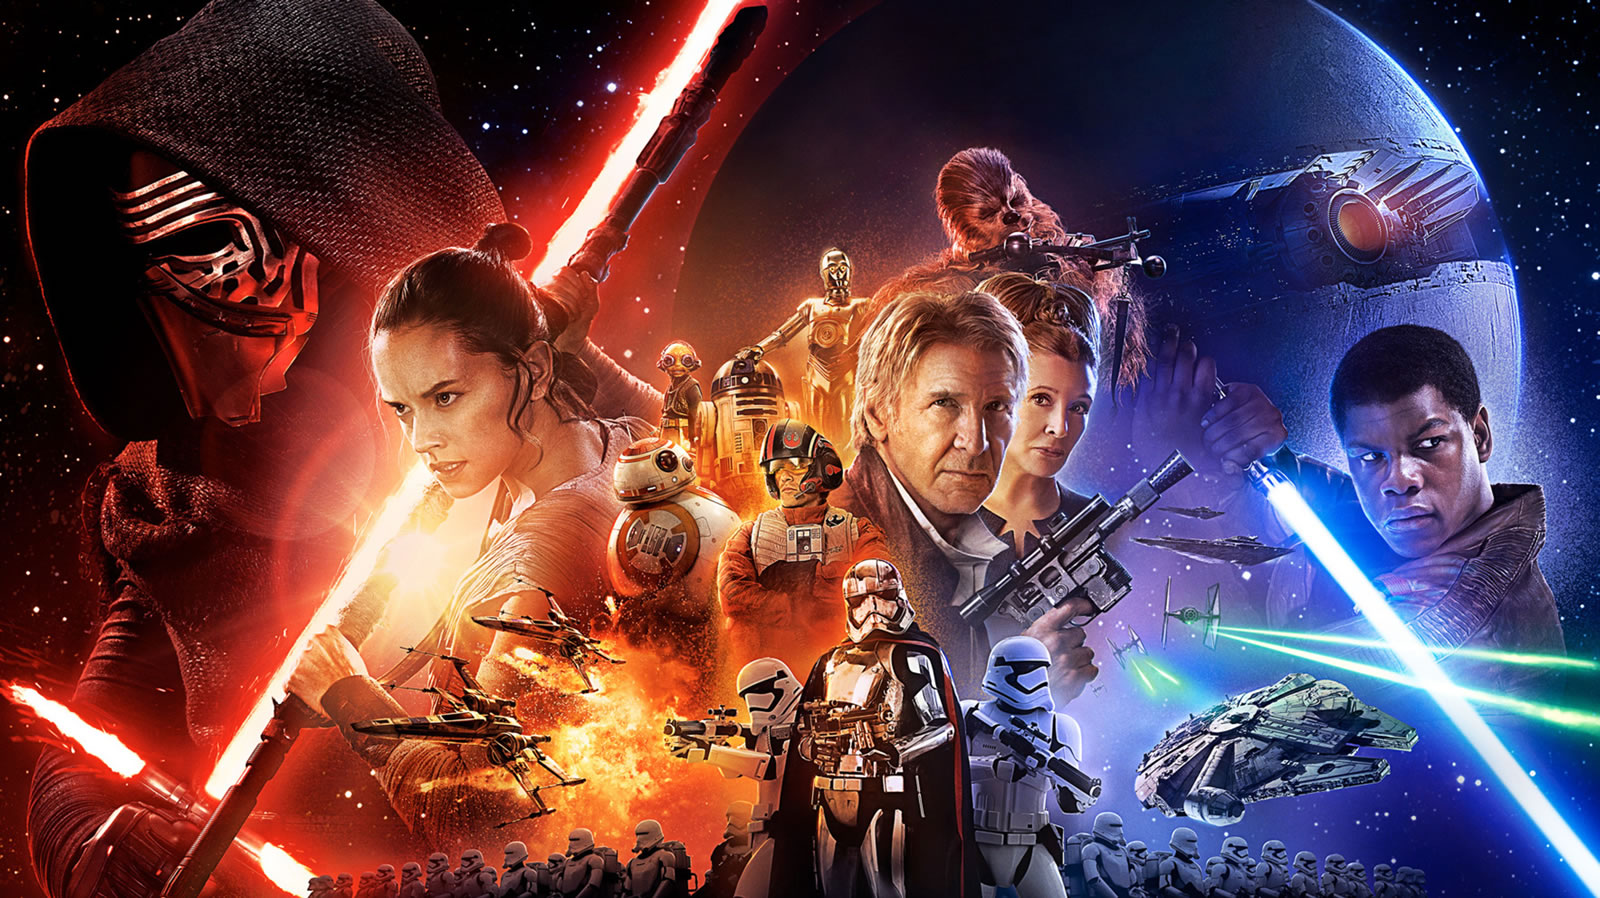 Star Wars Force Awakens Wallpaper 7 Scera